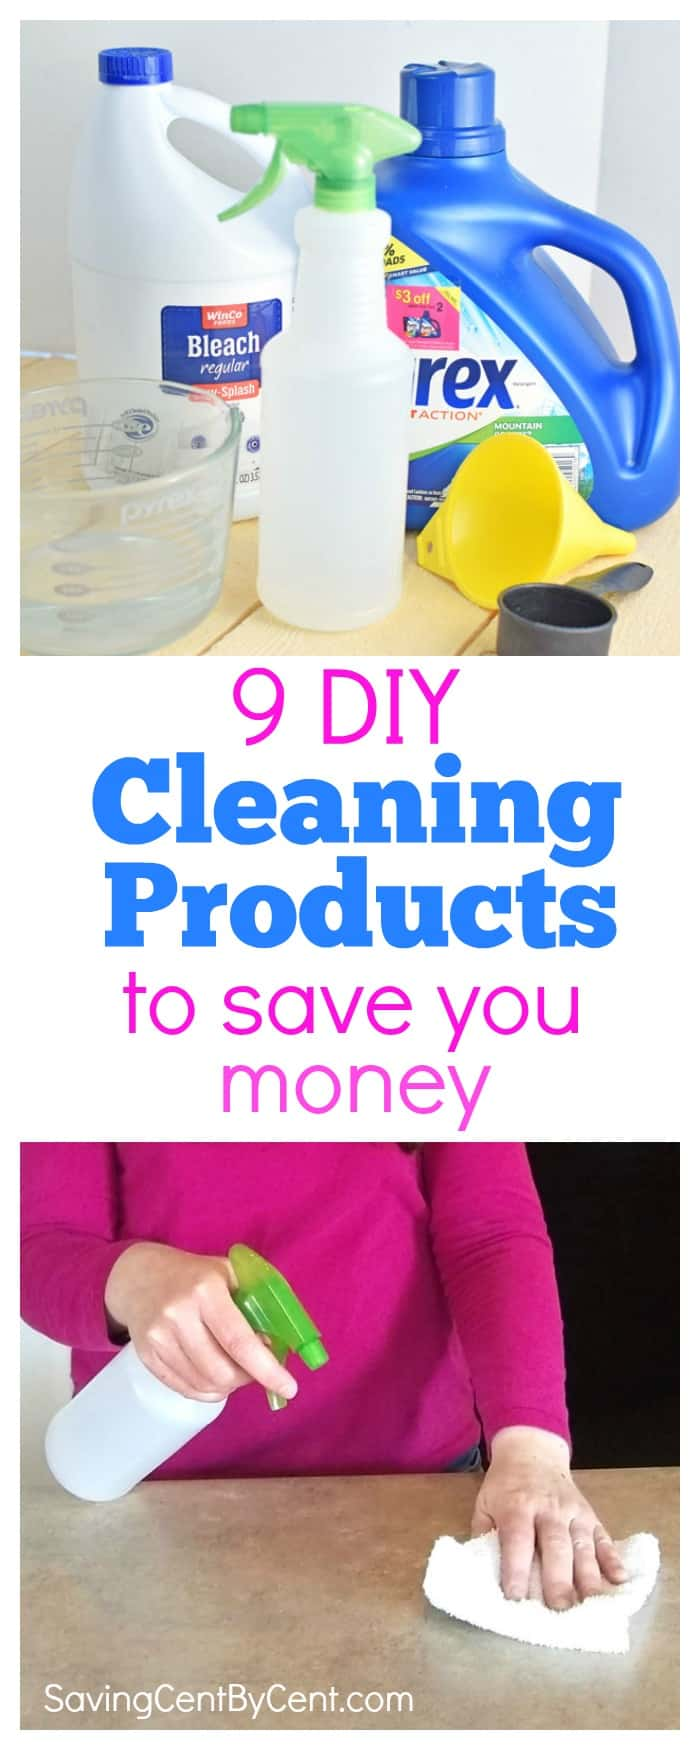 9 DIY Cleaning Products